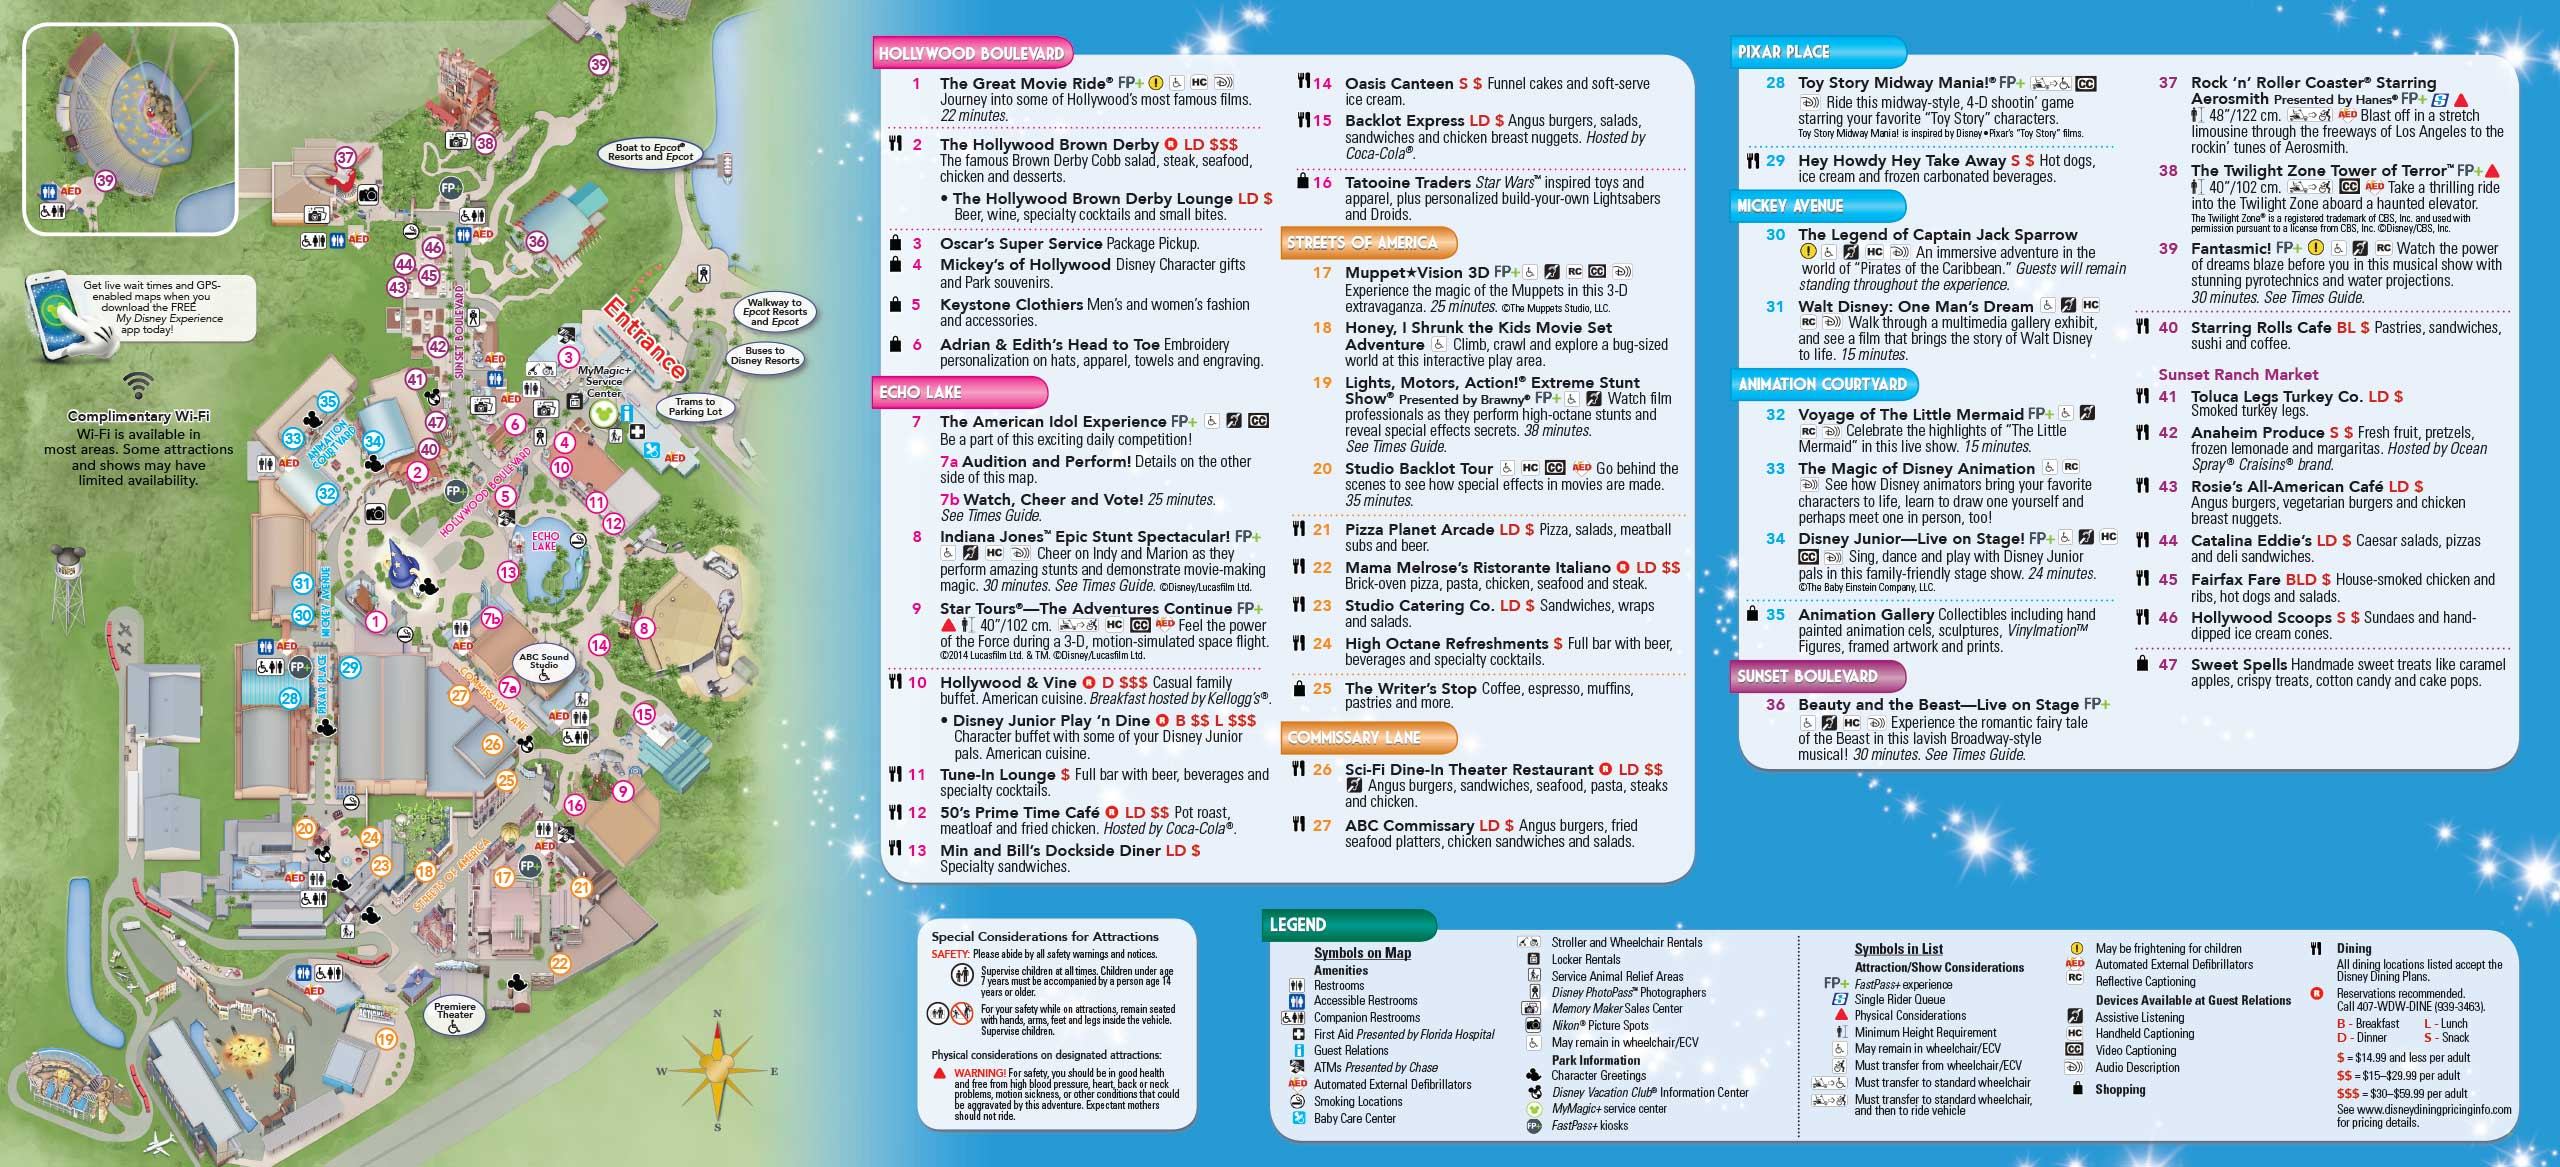 2014 Walt Disney World Park Maps with FastPass+ - Photo 8 of 8